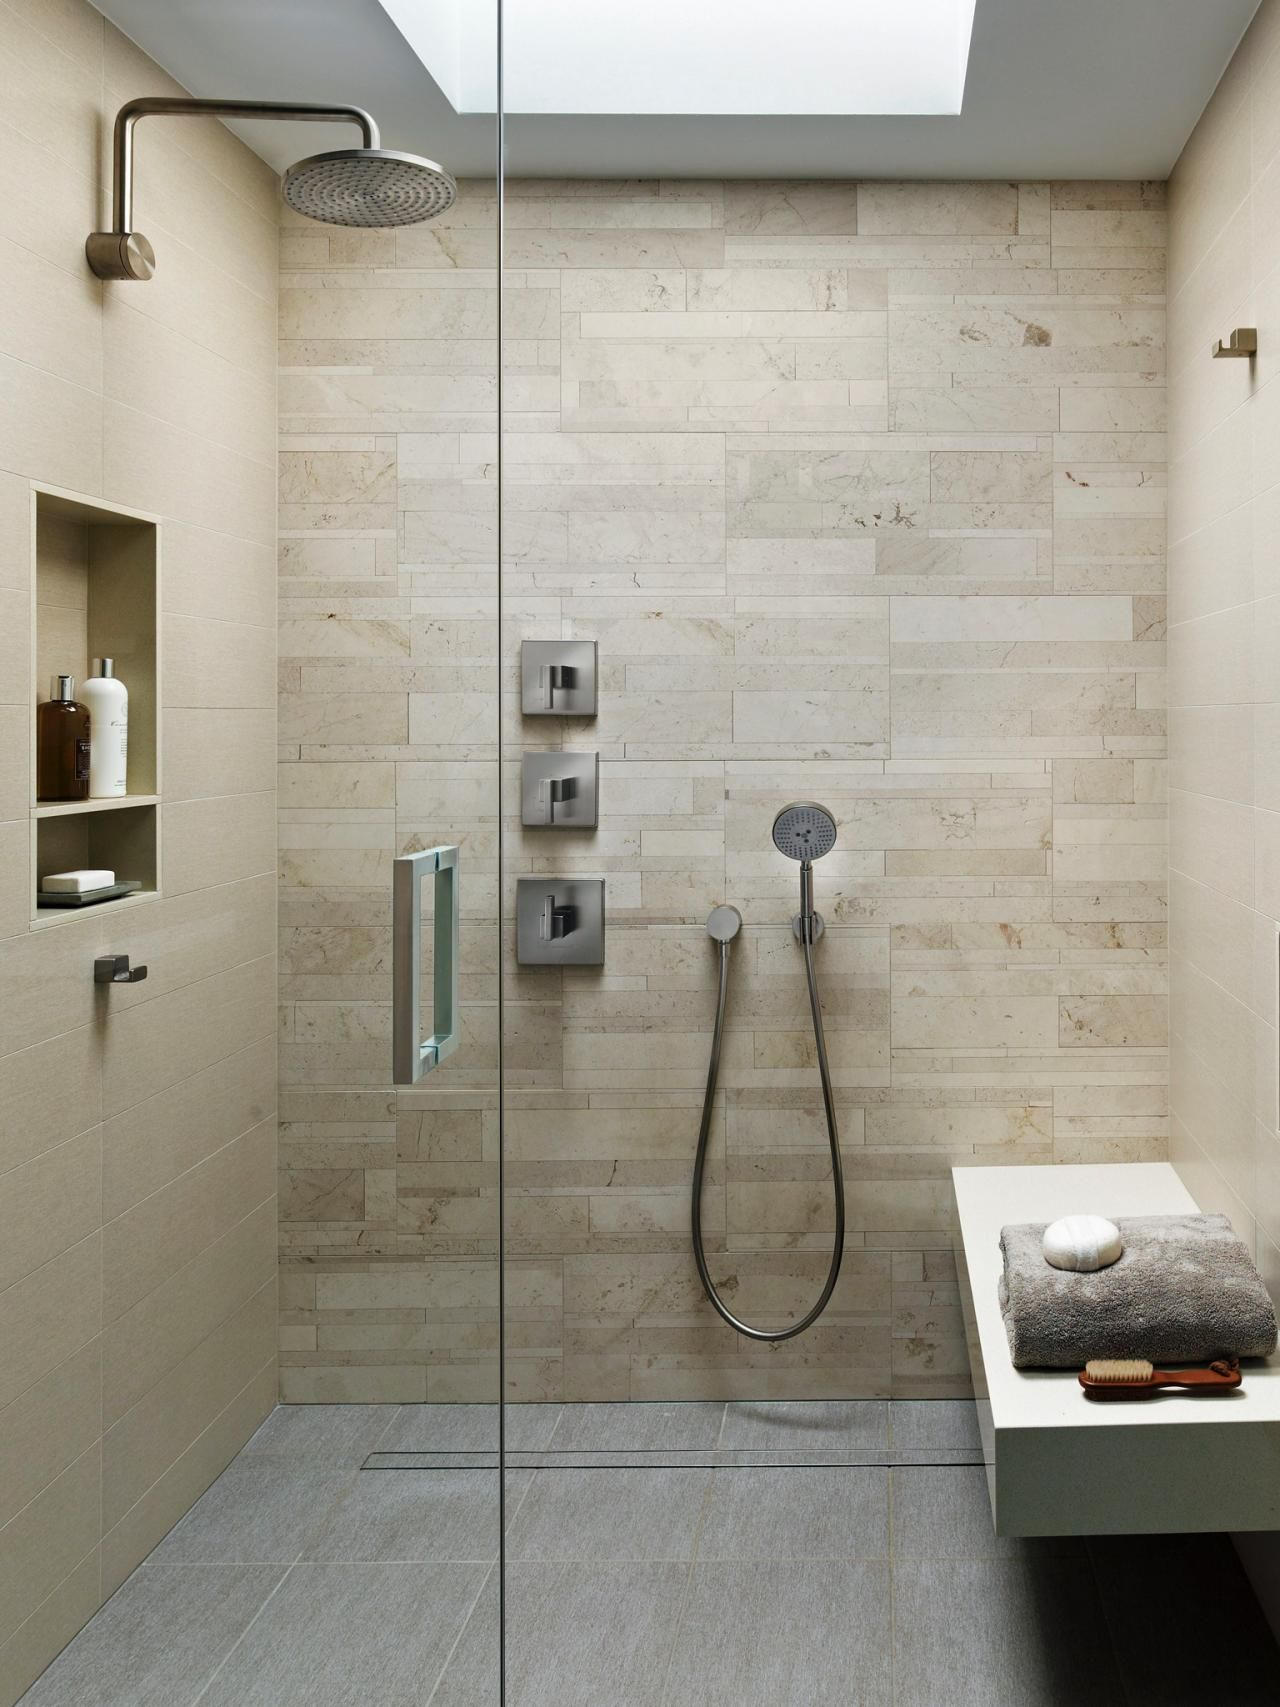 15 Dreamy Spa-Inspired Bathrooms | Pinterest | Hgtv, Spa shower and ...